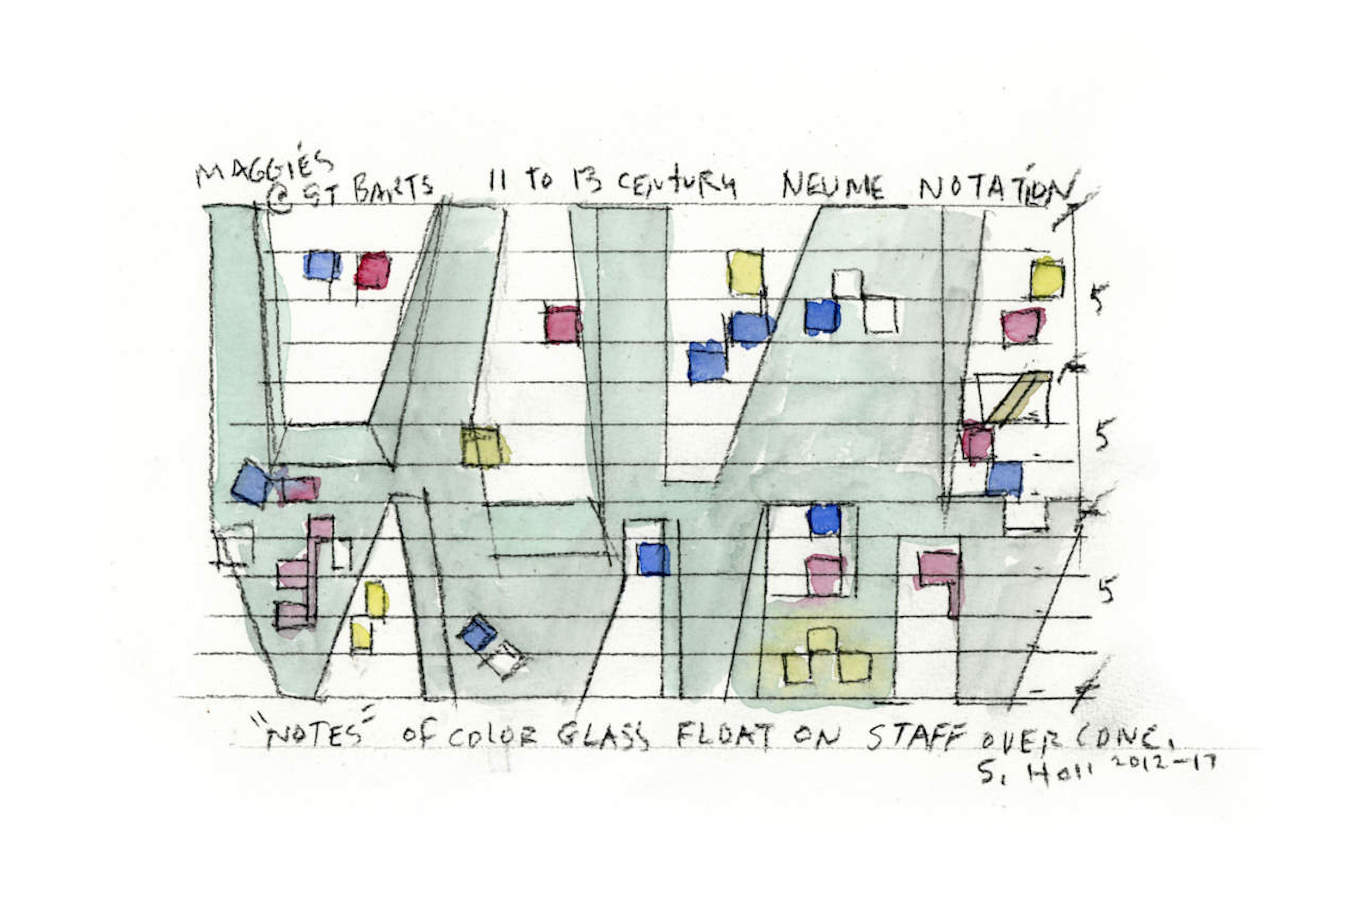 maggies-centre-bart. [03] 'One Two Five', la arquitectura de Steven Holl